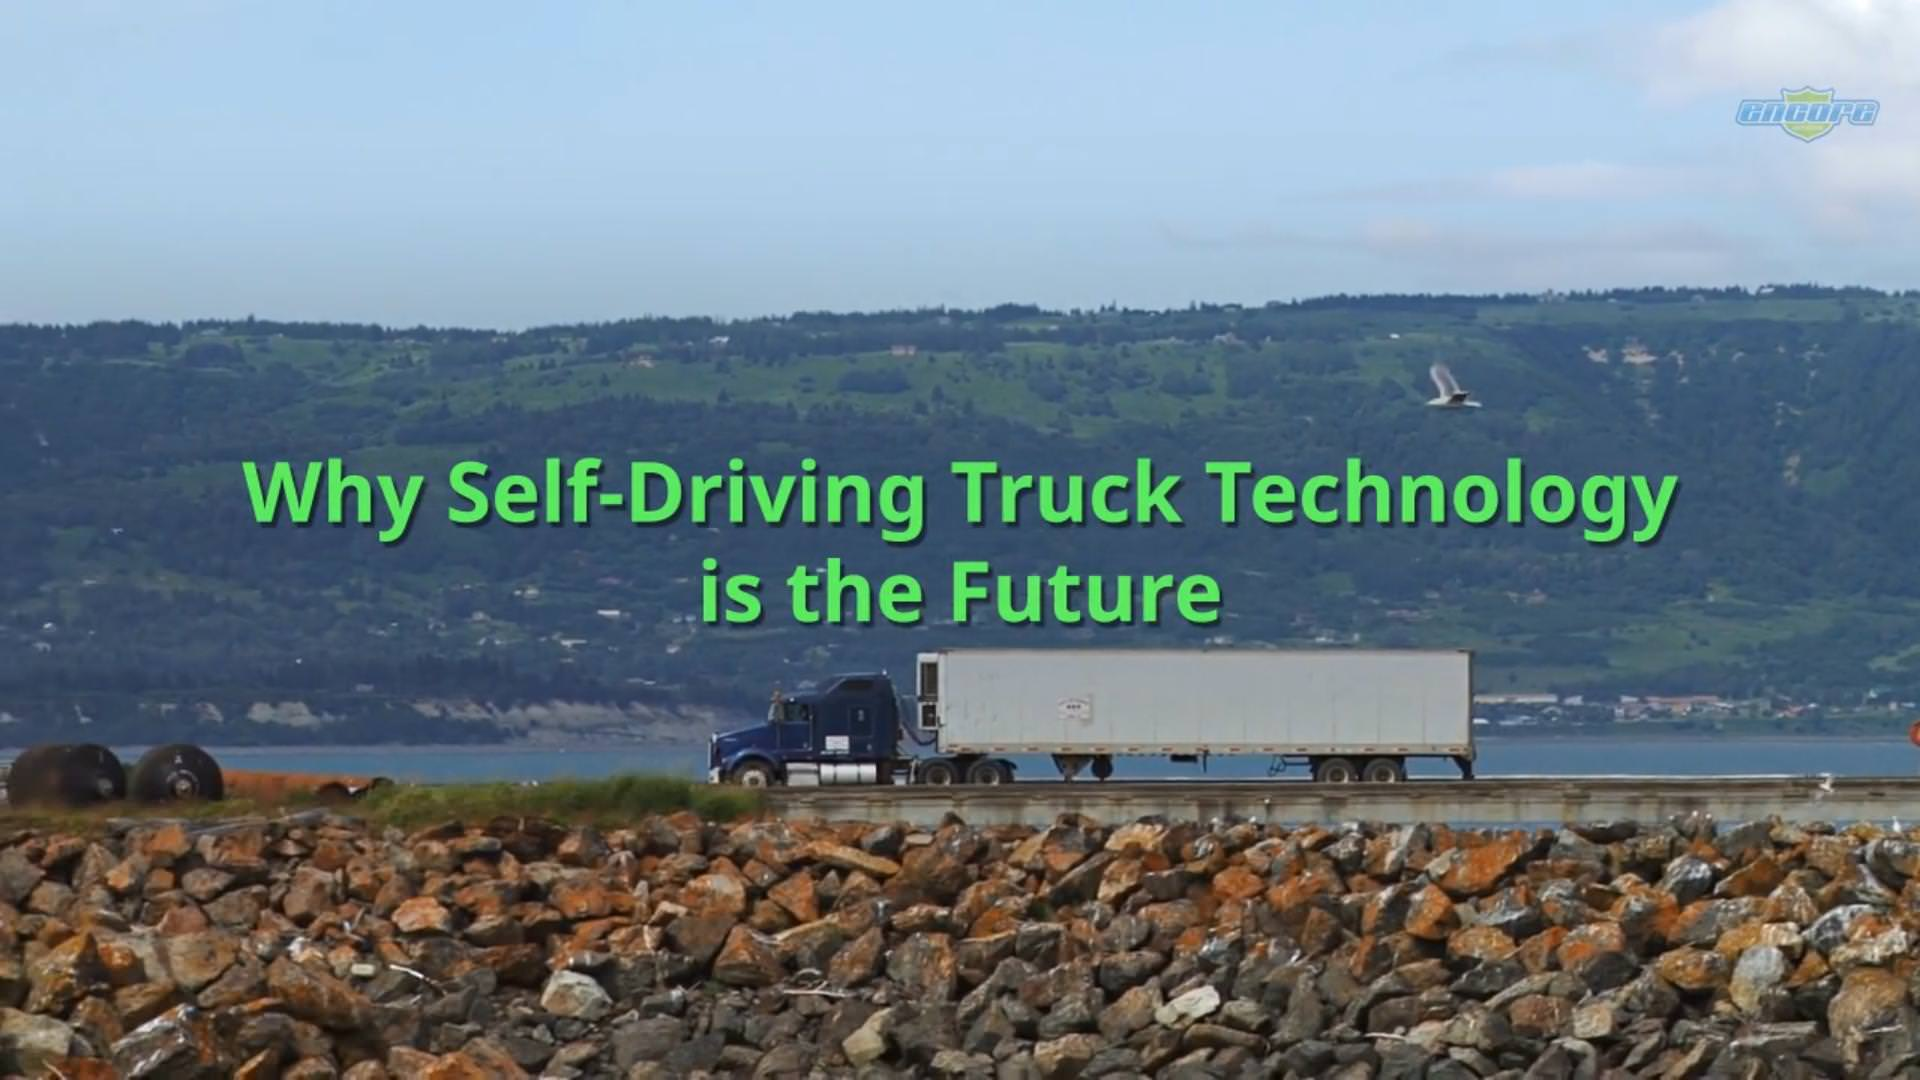 Why Self-Driving Truck Technology Is the Future